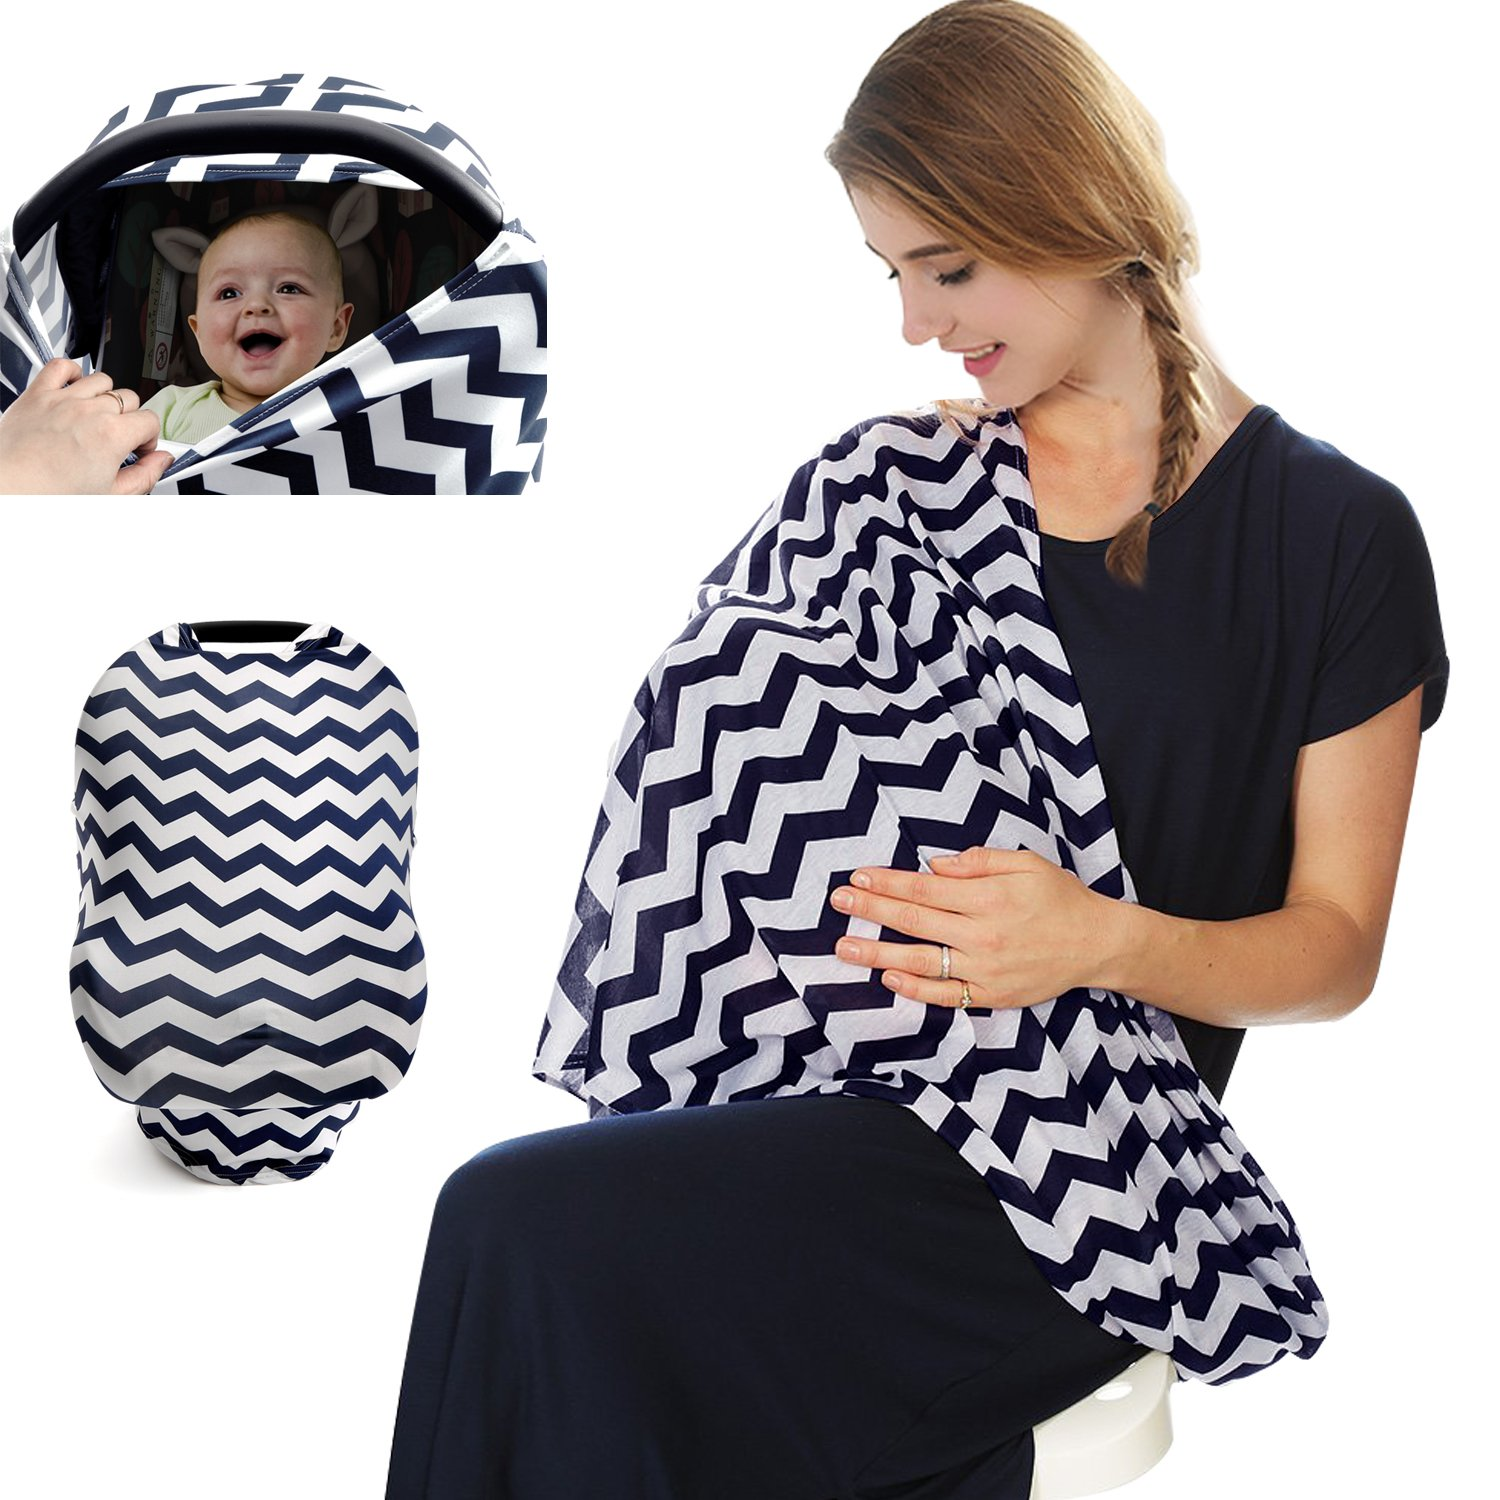 Children Hub Baby Nursing Cover - Multi-Use Breastfeeding Scarf - Stretchy and Breathable Baby Car Seat Cover Canopy (V Shaped) Shoppers Smart